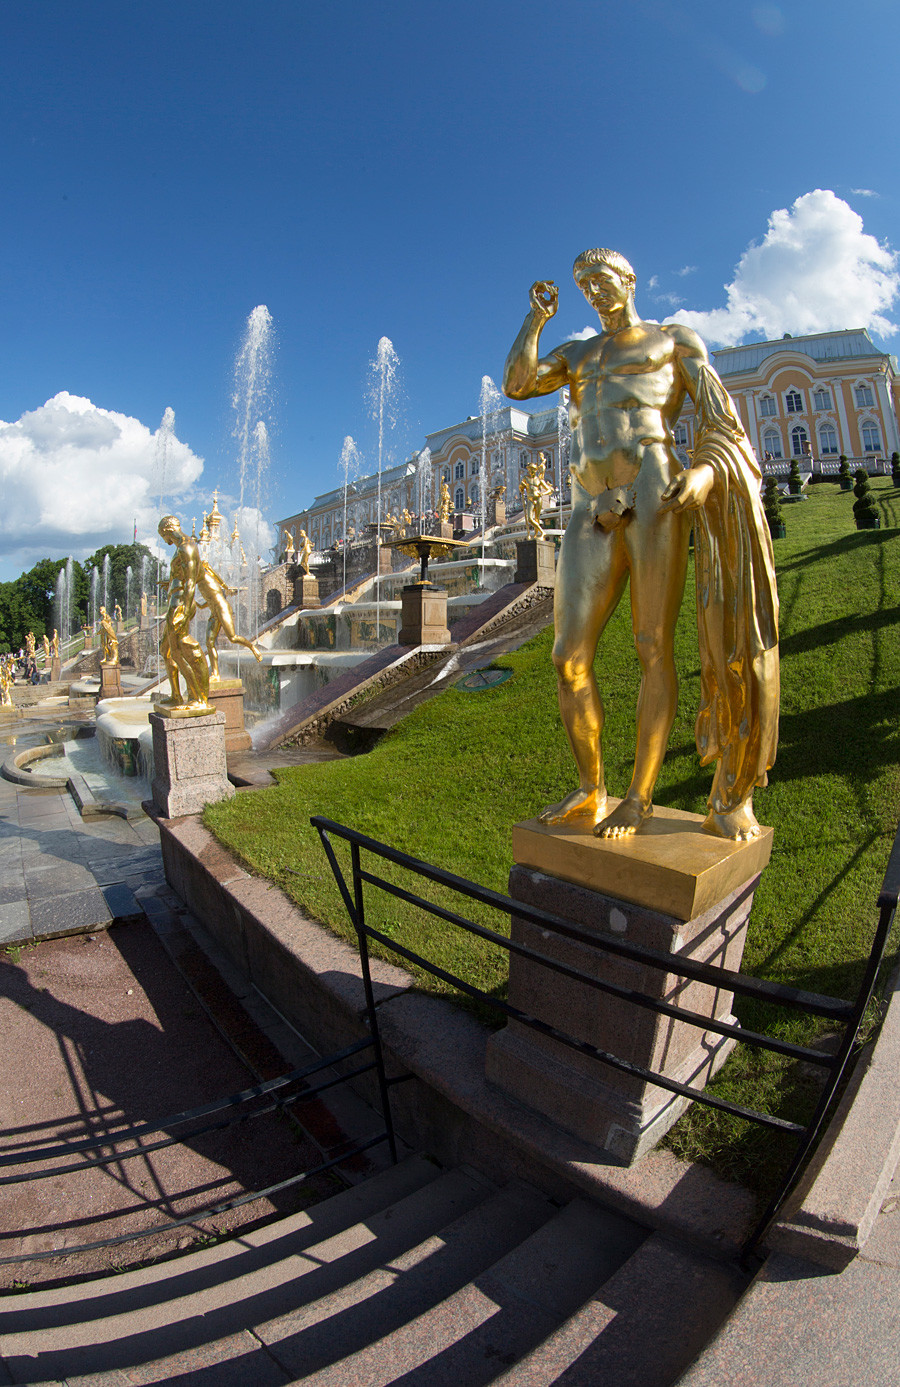 Golden statues and fountains in Peterhof Park Petrodvorets.